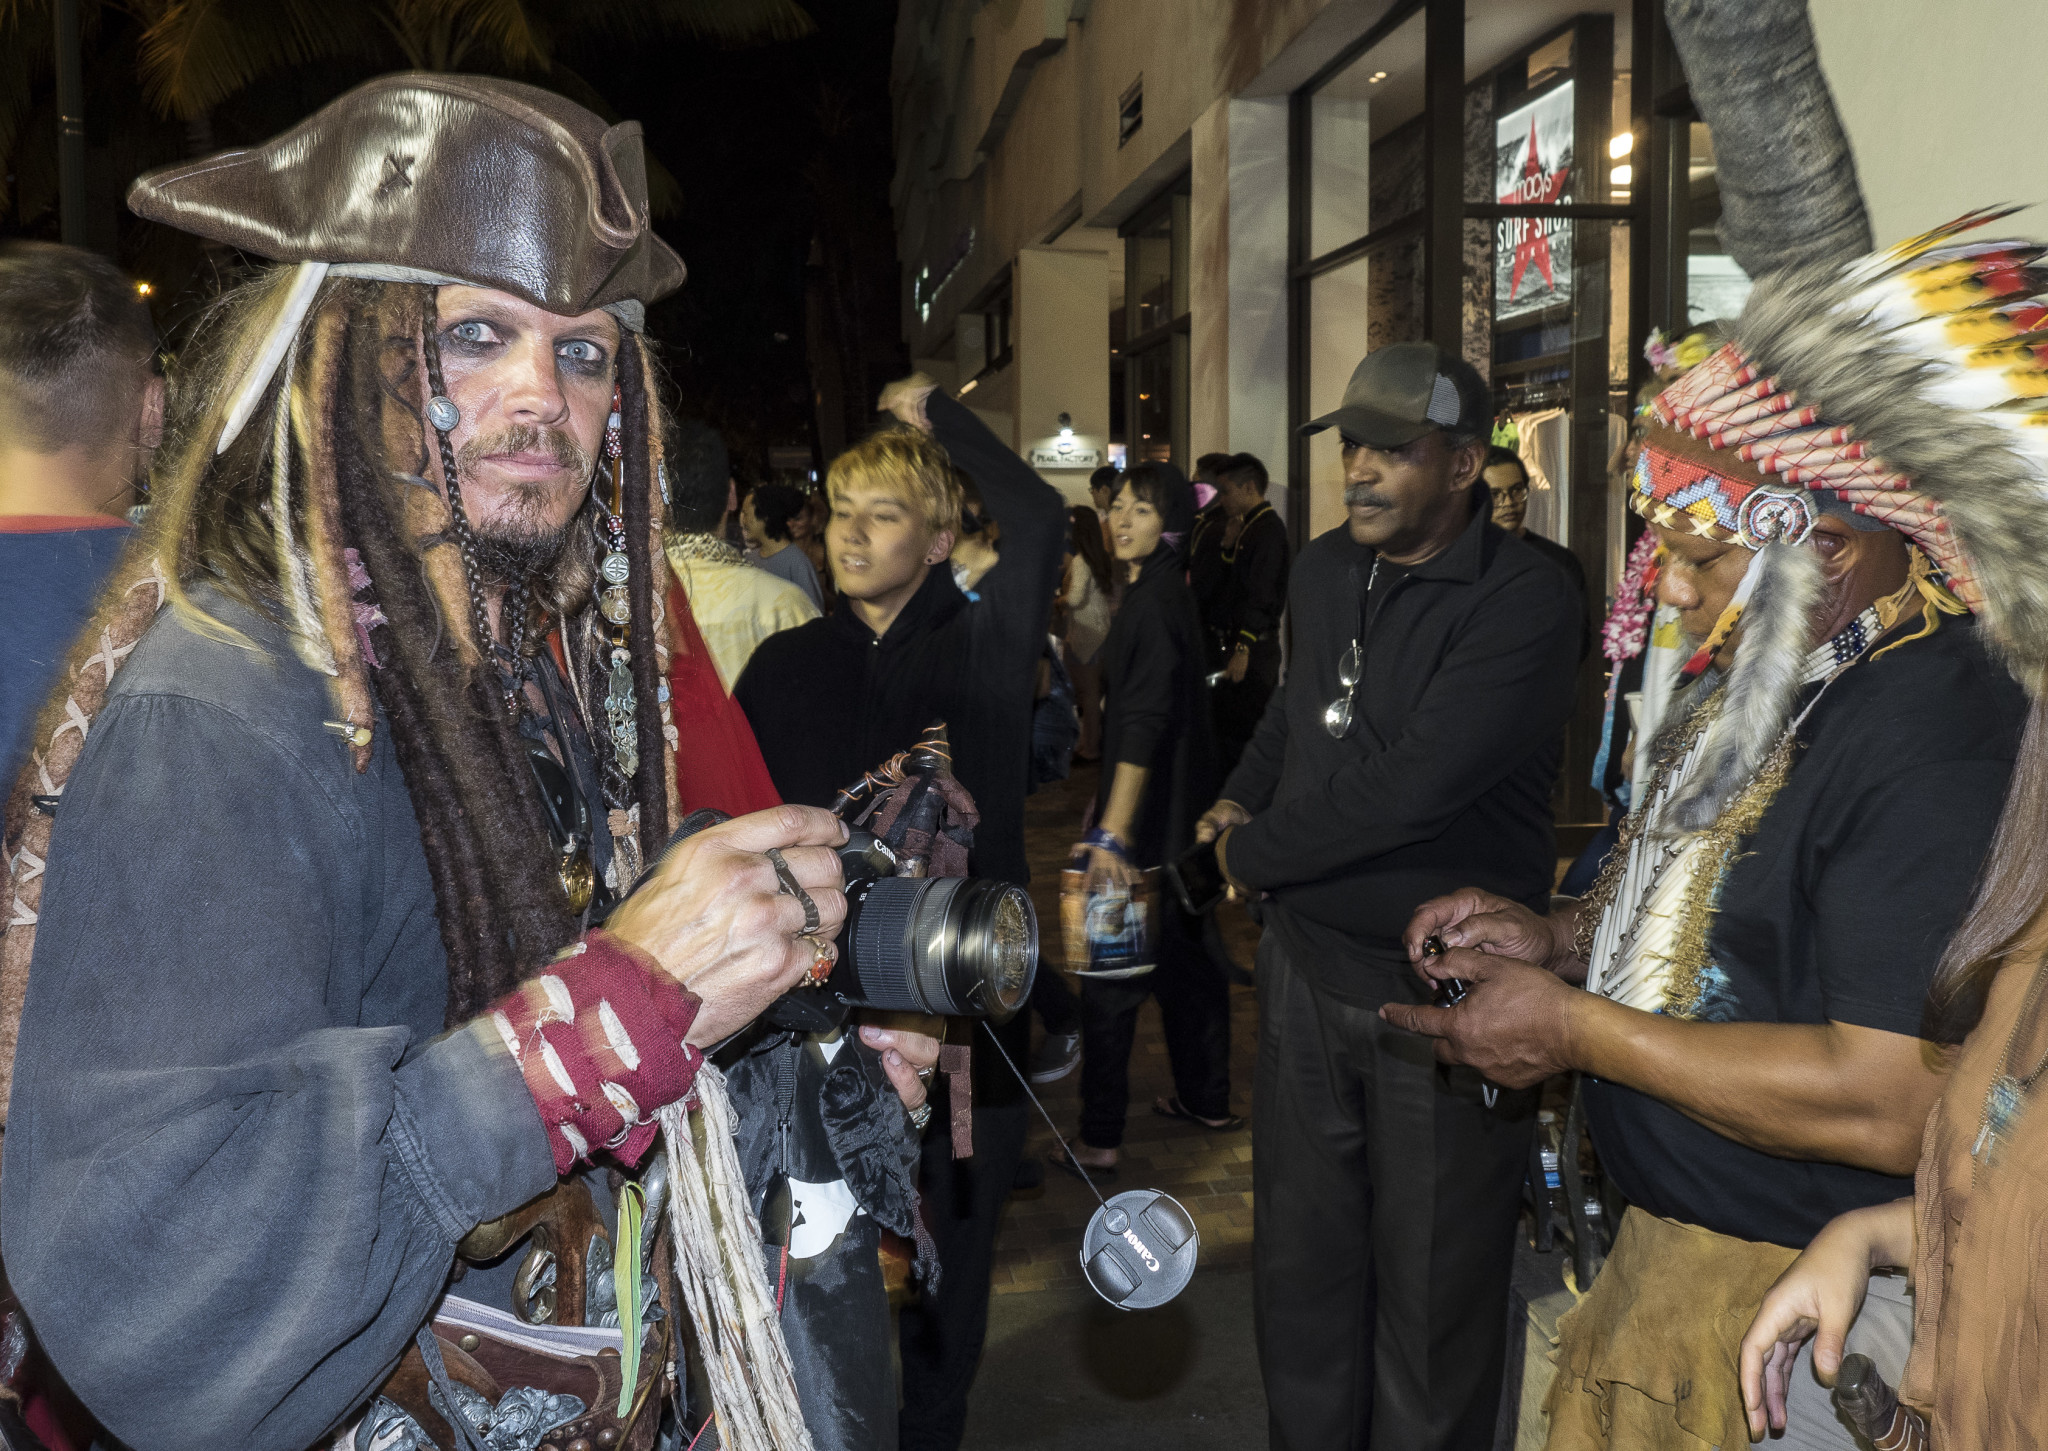 <p>It wasn&#8217;t all politics on Kalakaua Avenue. One celebrant was channeling pirate captain Jack Sparrow of &#8220;Pirates of the Caribbean&#8221; cinema fame.</p>